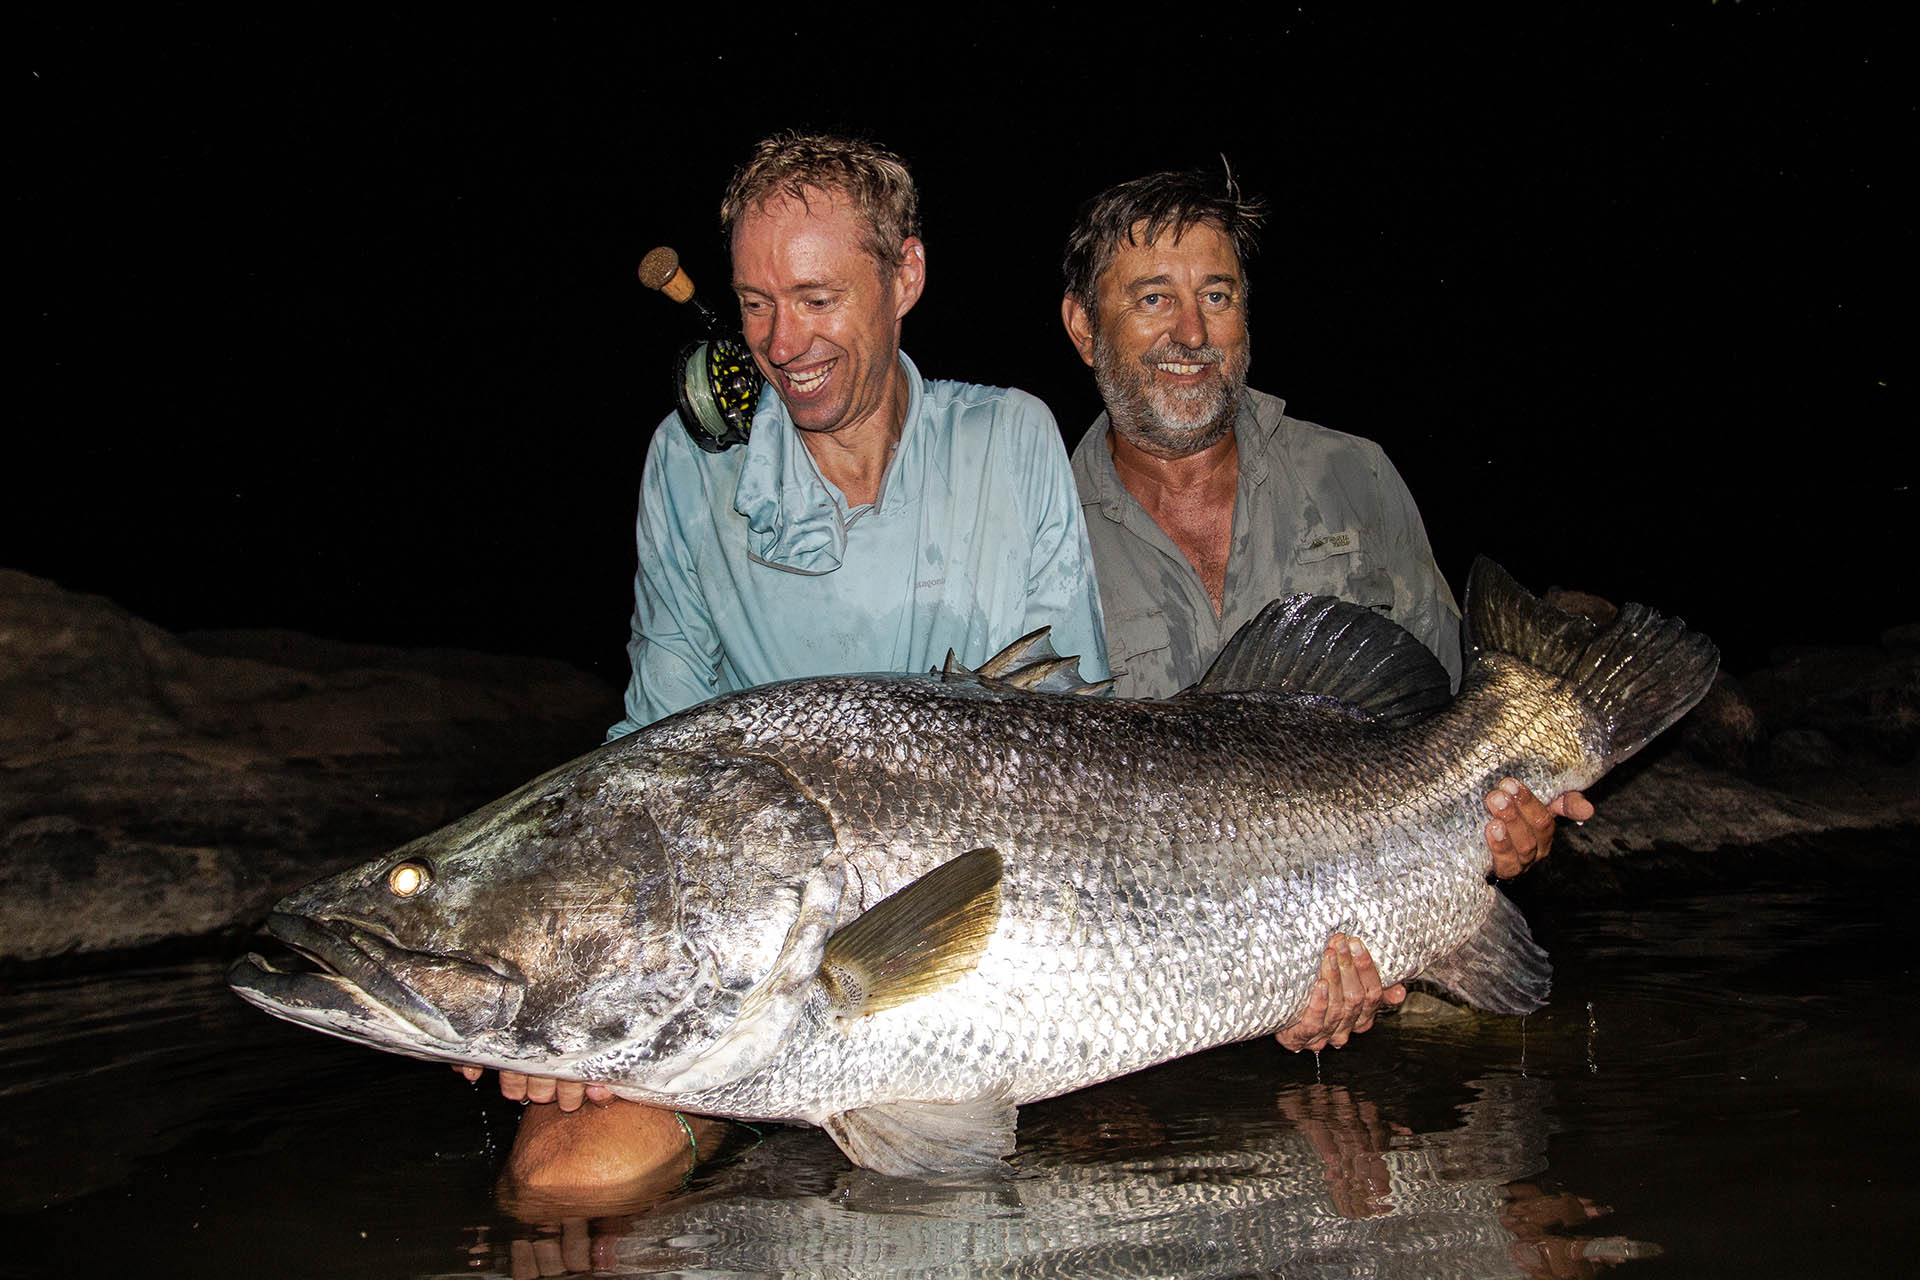 faro-river-100-pounders-club-2-african-waters-cast-connect-conserve-deeply-committed-to-conservation fishing blog